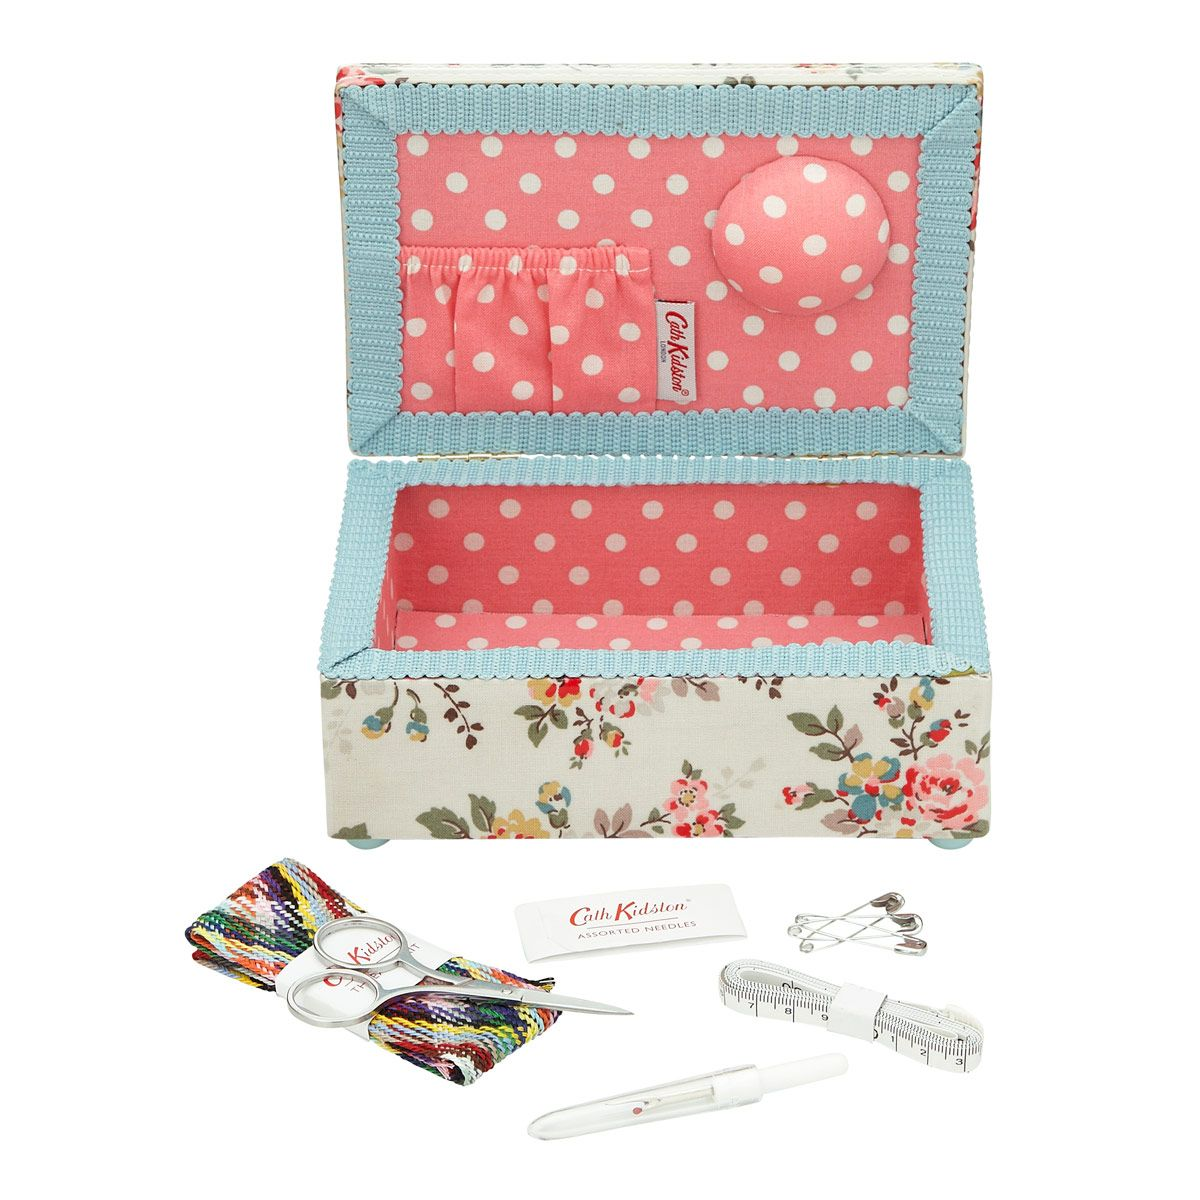 Knitting Sewing Crafts Kingswood Rose Mending Kit Cathkidston